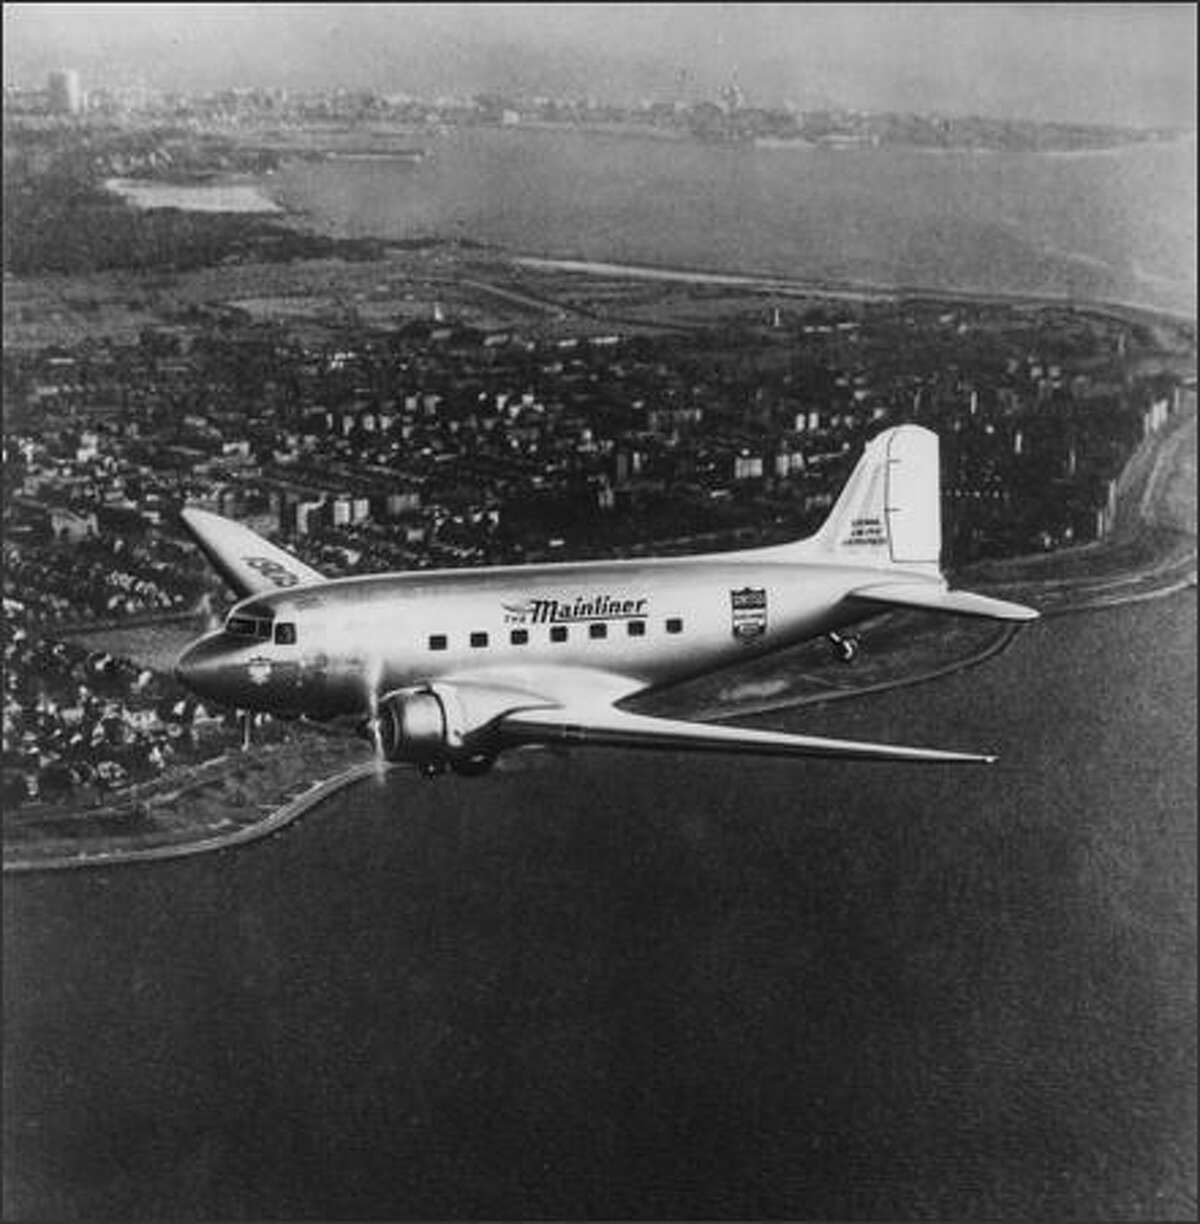 A new Douglas-built United Mainliner airplane in flight, 1937. A United ad that year boasted